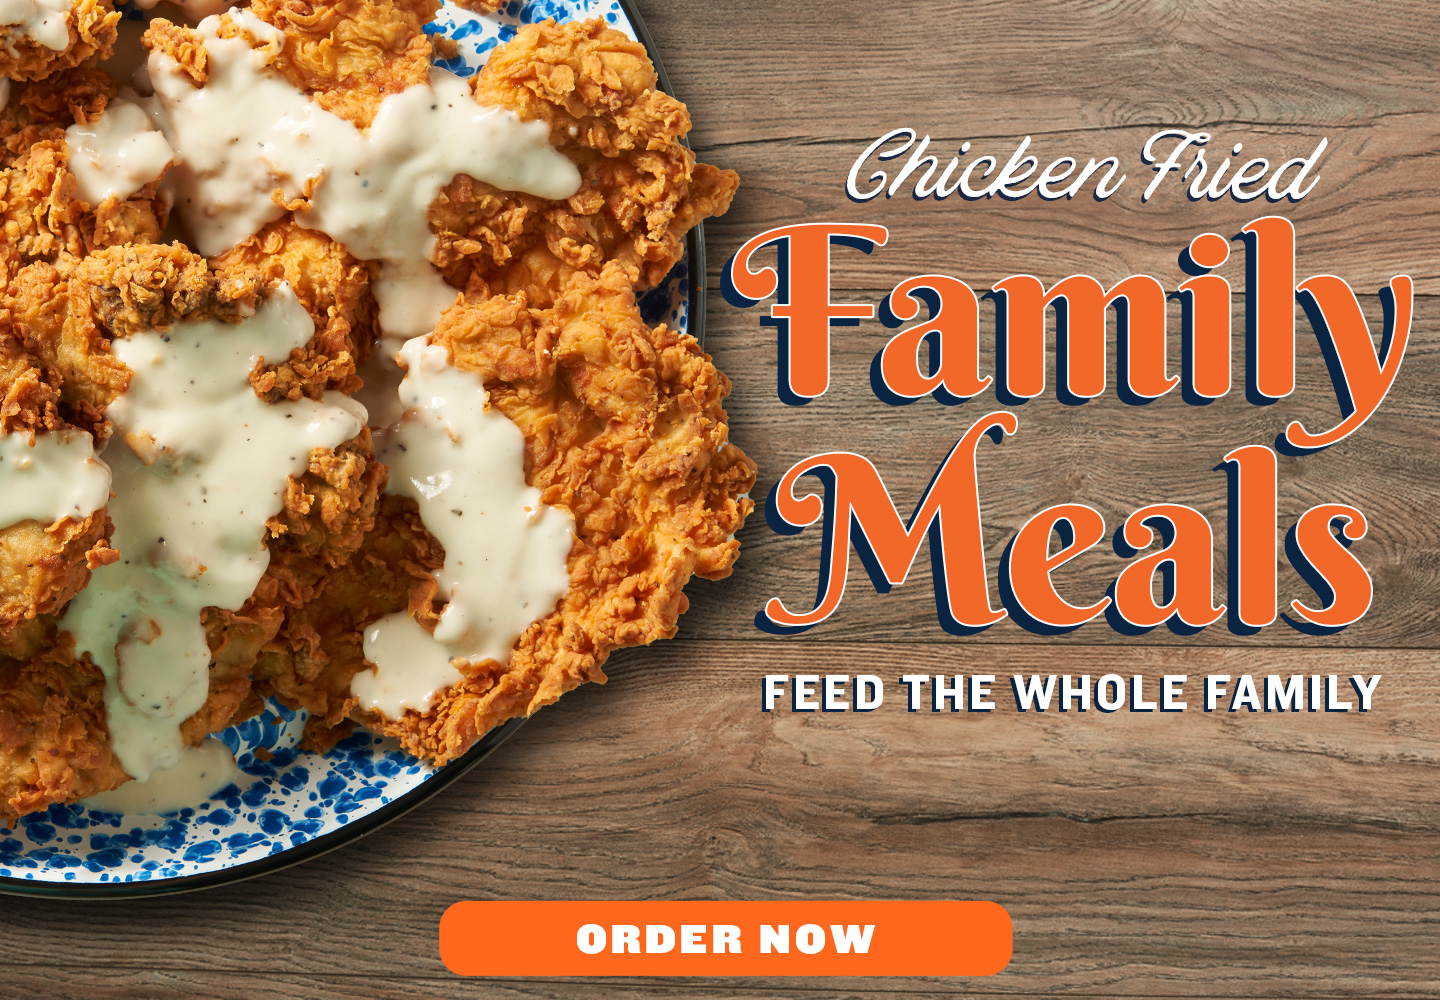 Chicken Fried Family Meals! Feed the whole family!